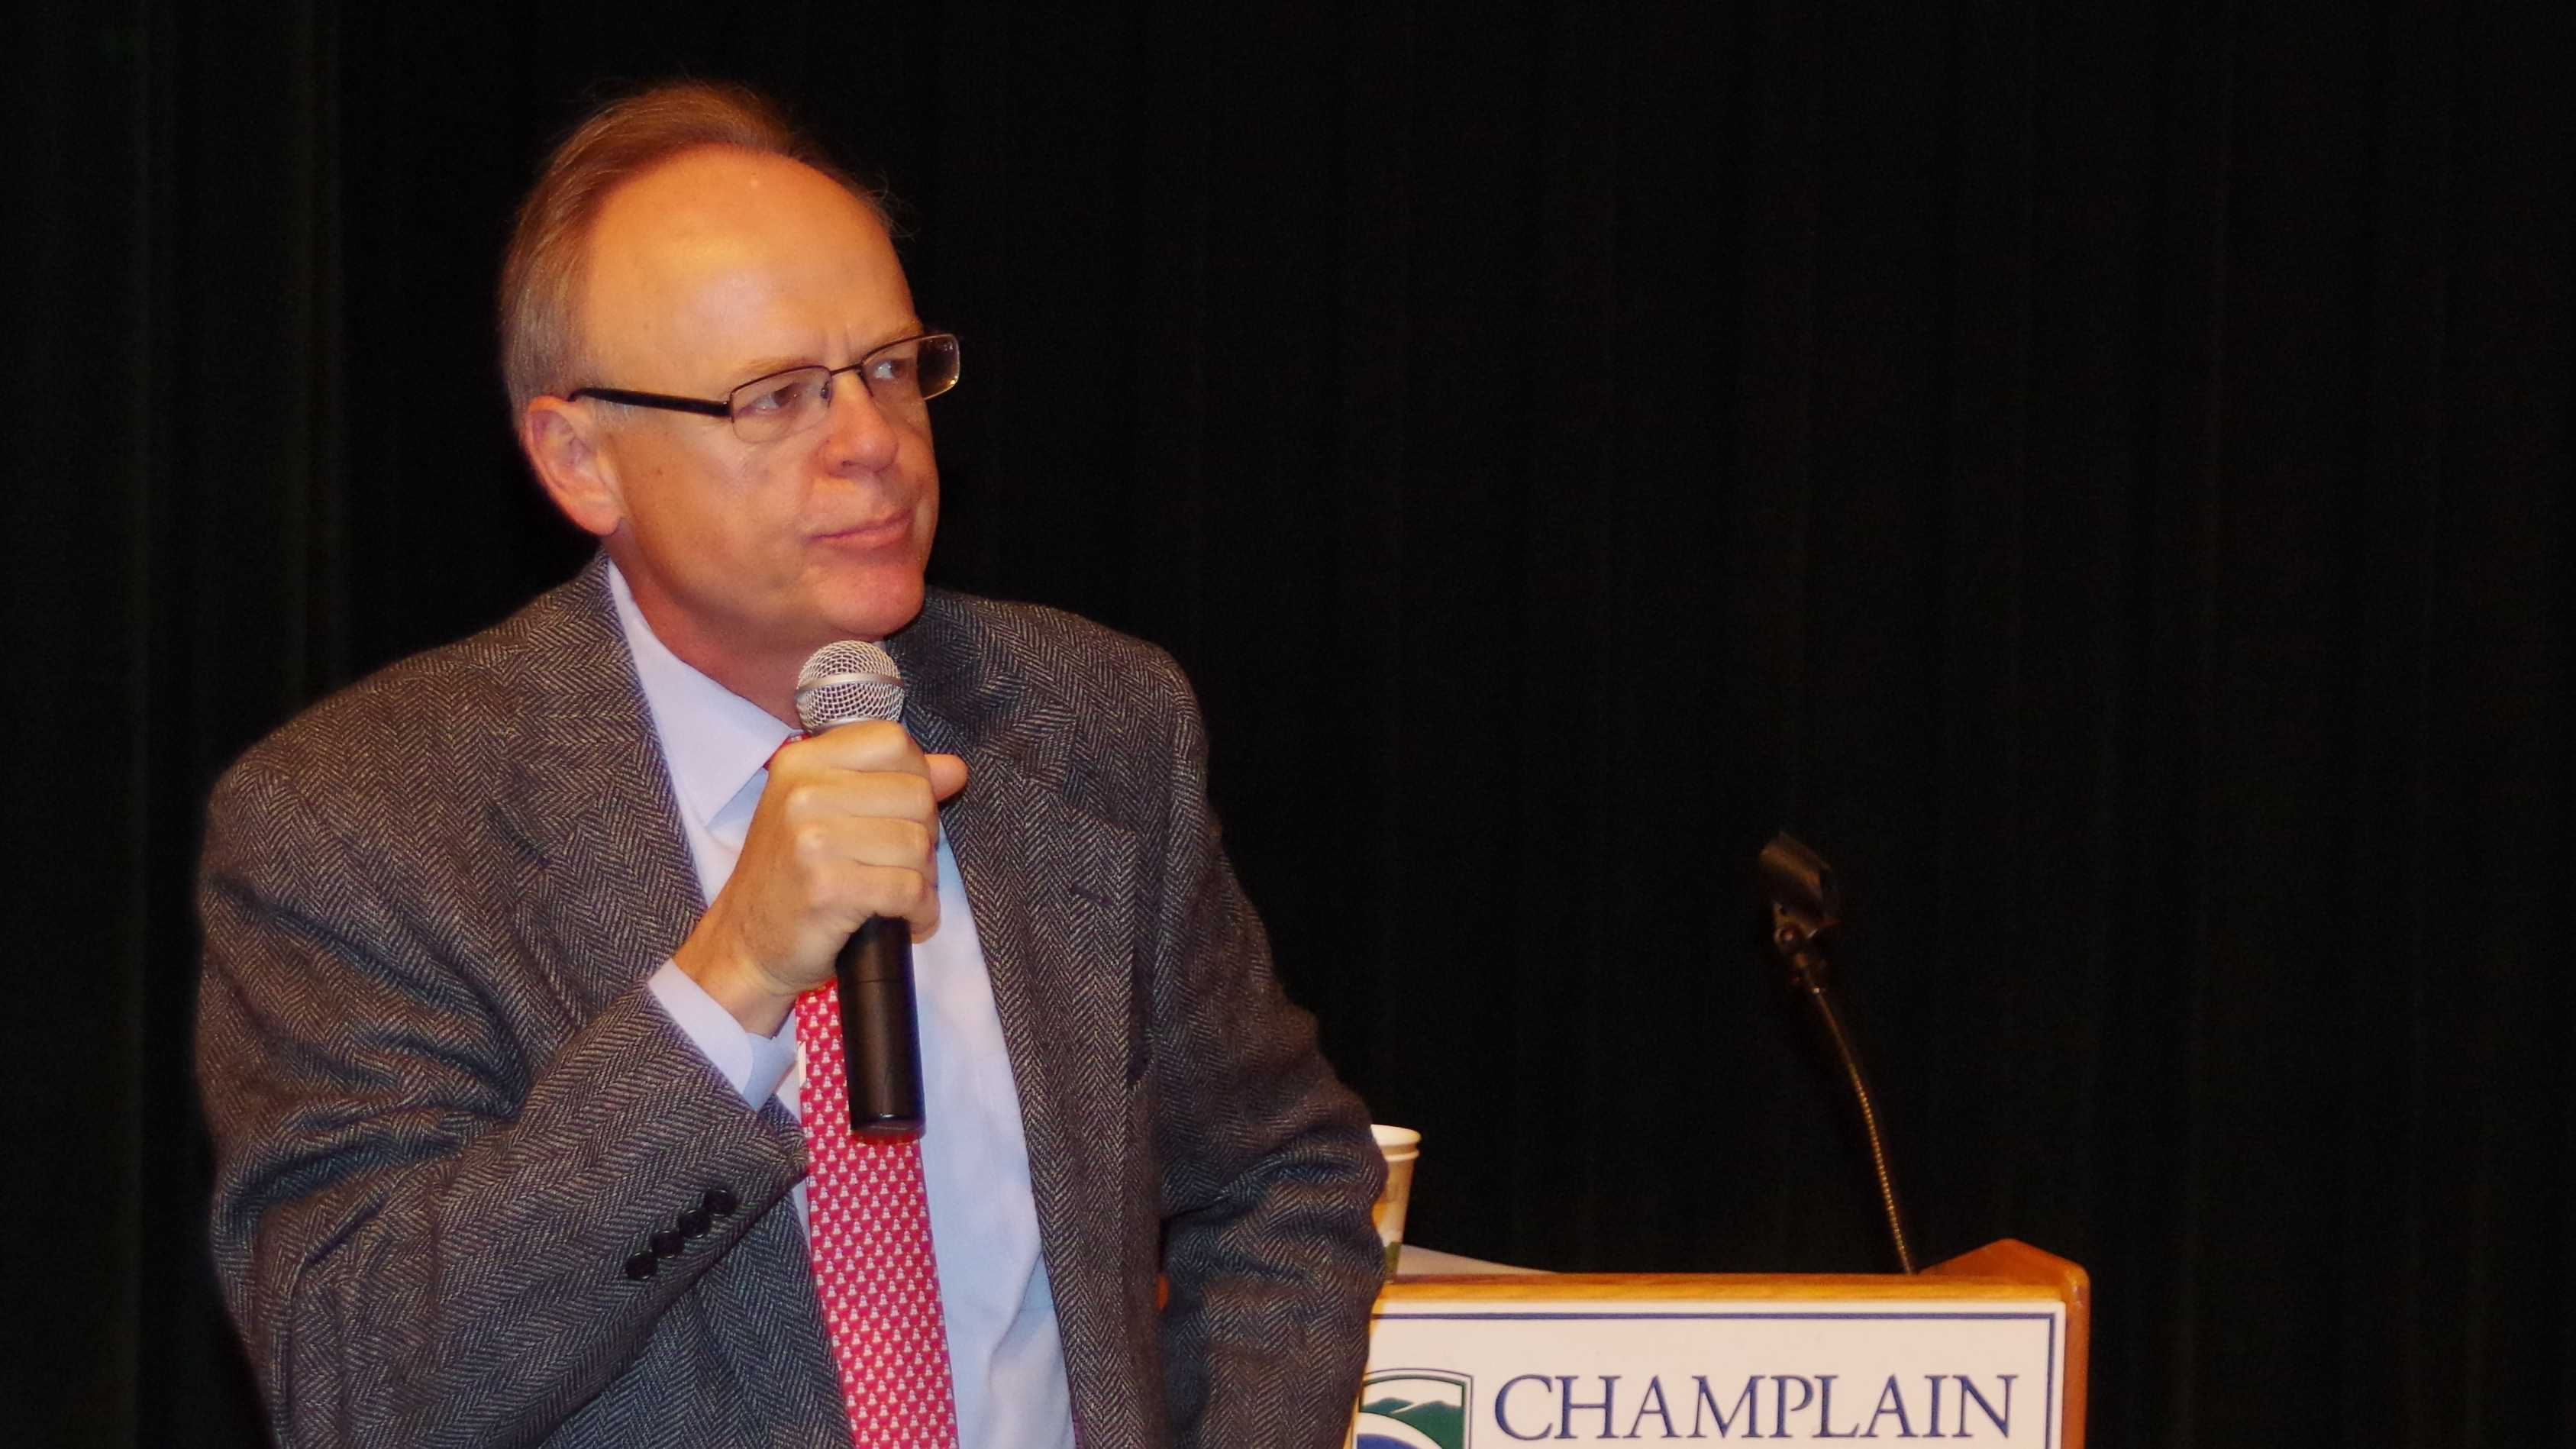 Champlain College President David Finney addresses a school assembly Monday morning.